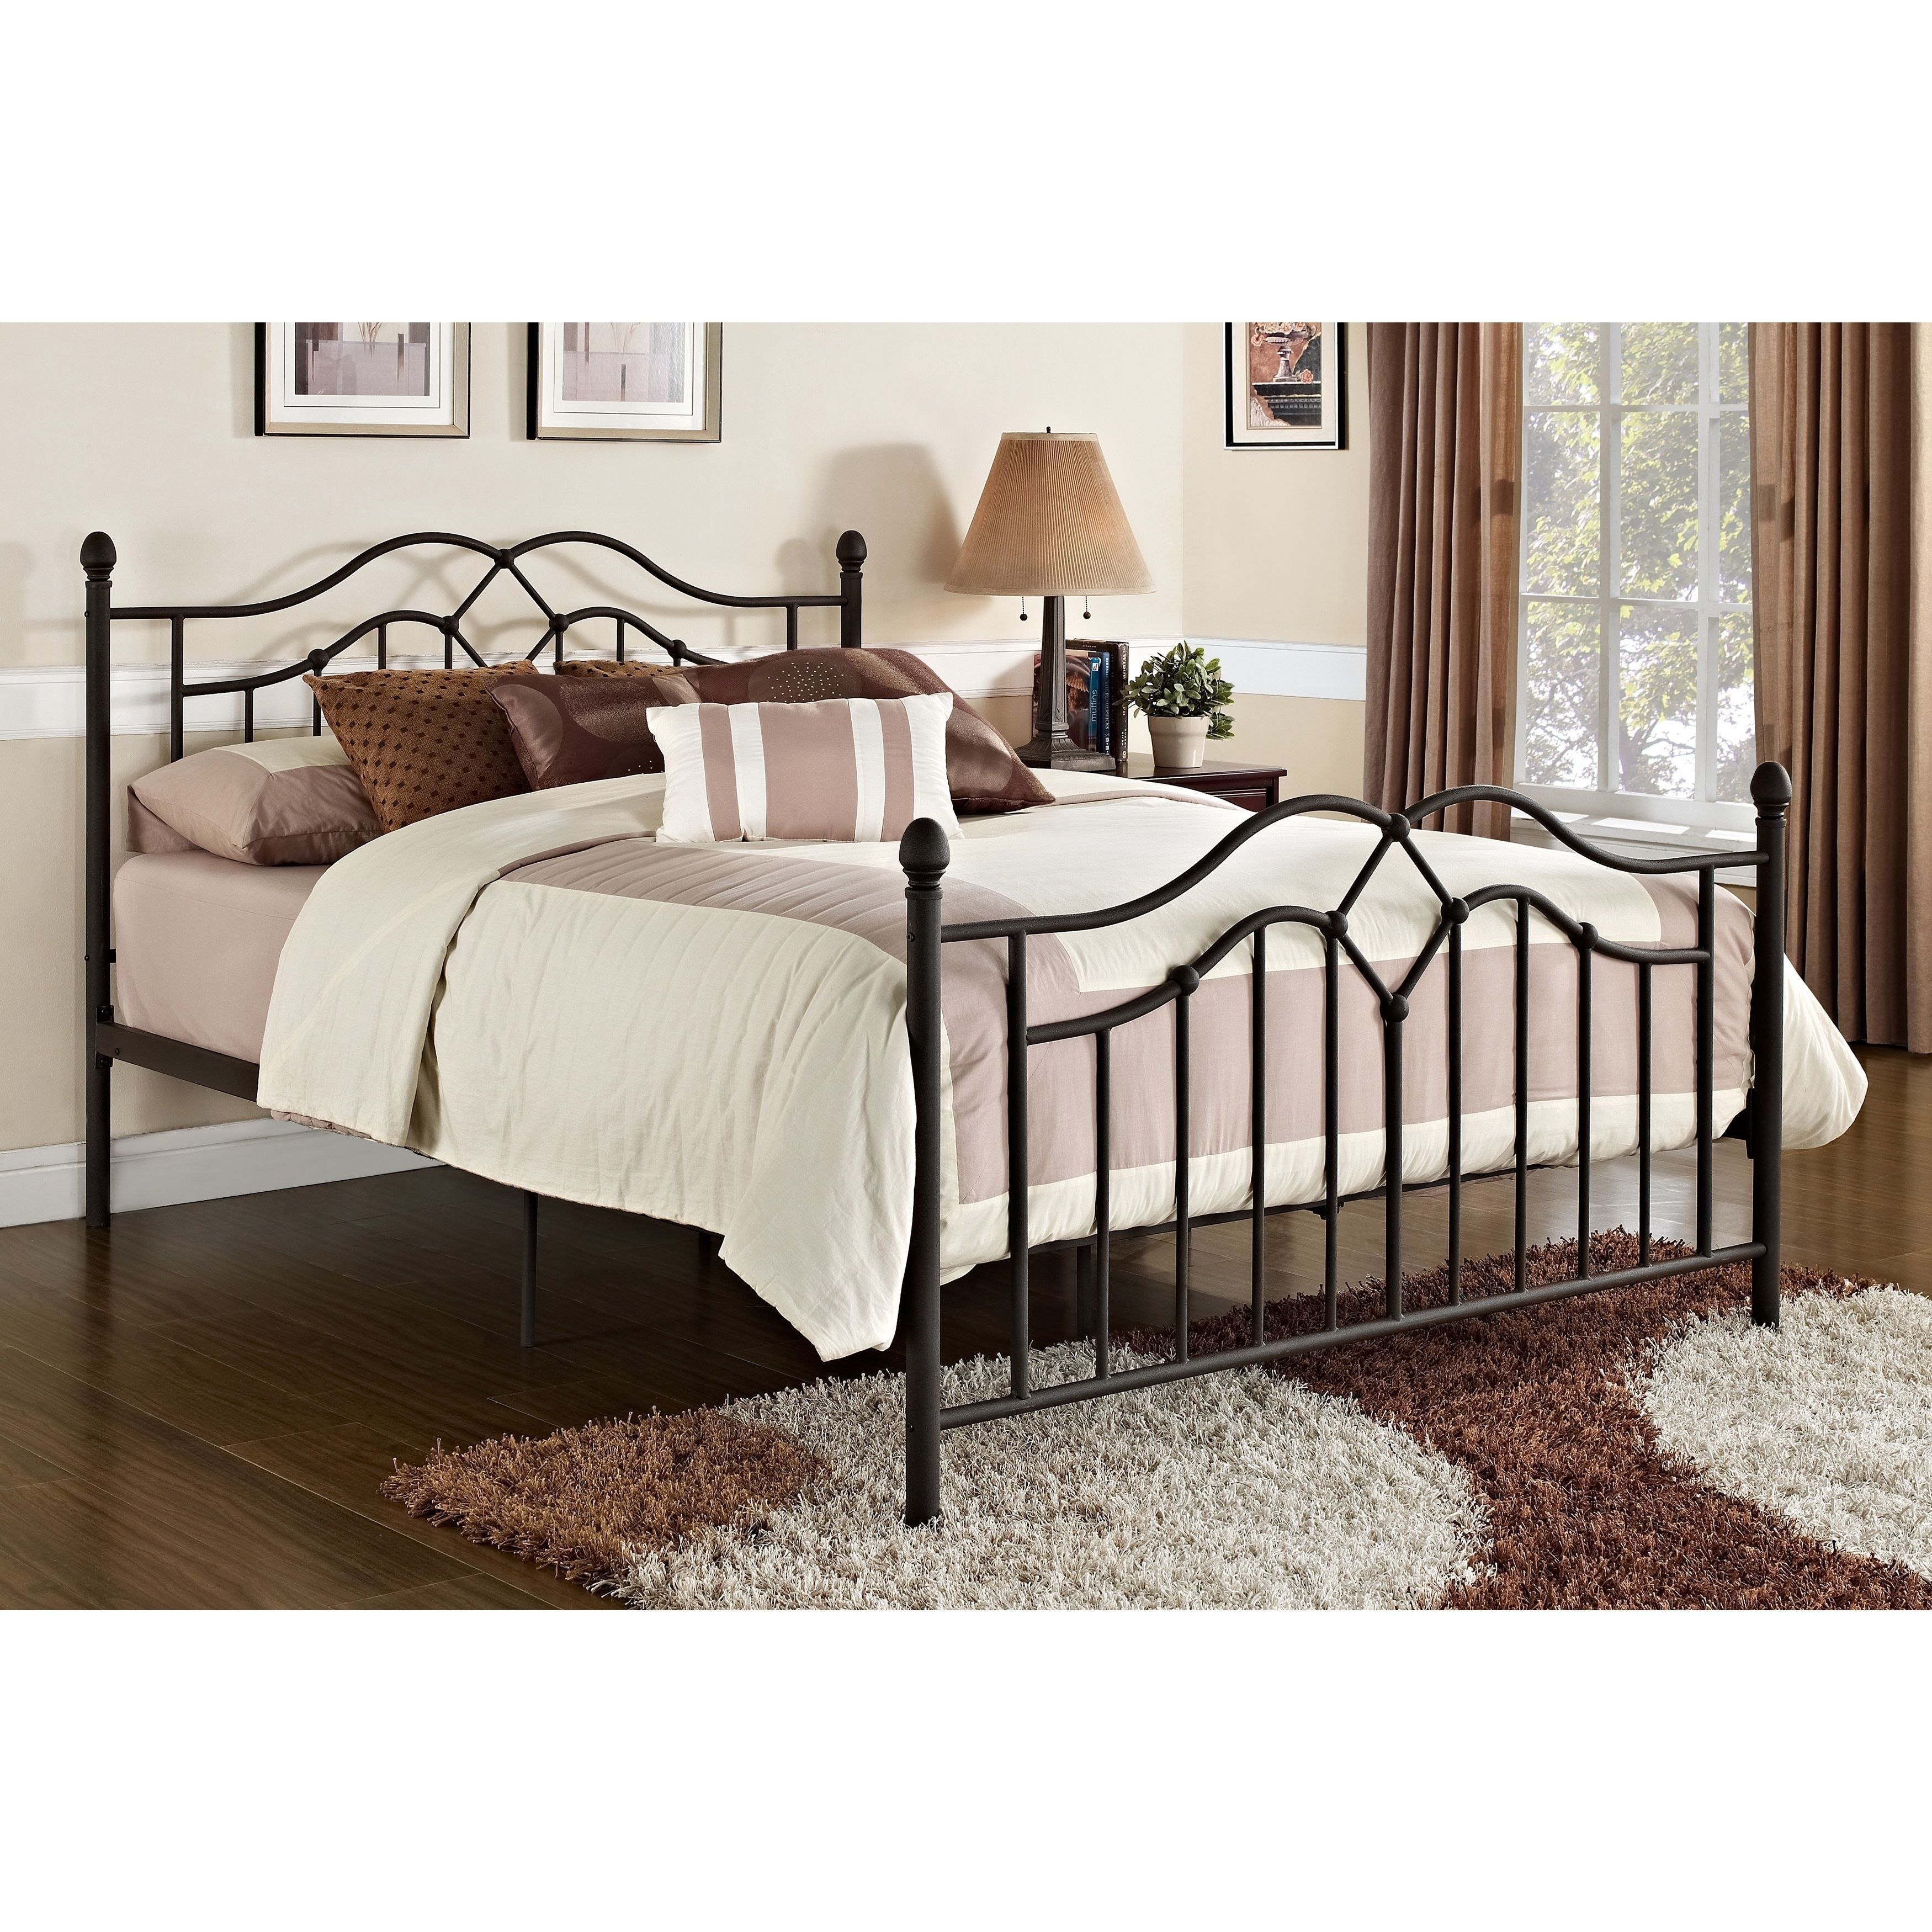 The DHP Tokyo Metal Bed is a tasteful welcome to any bedroom. The ...